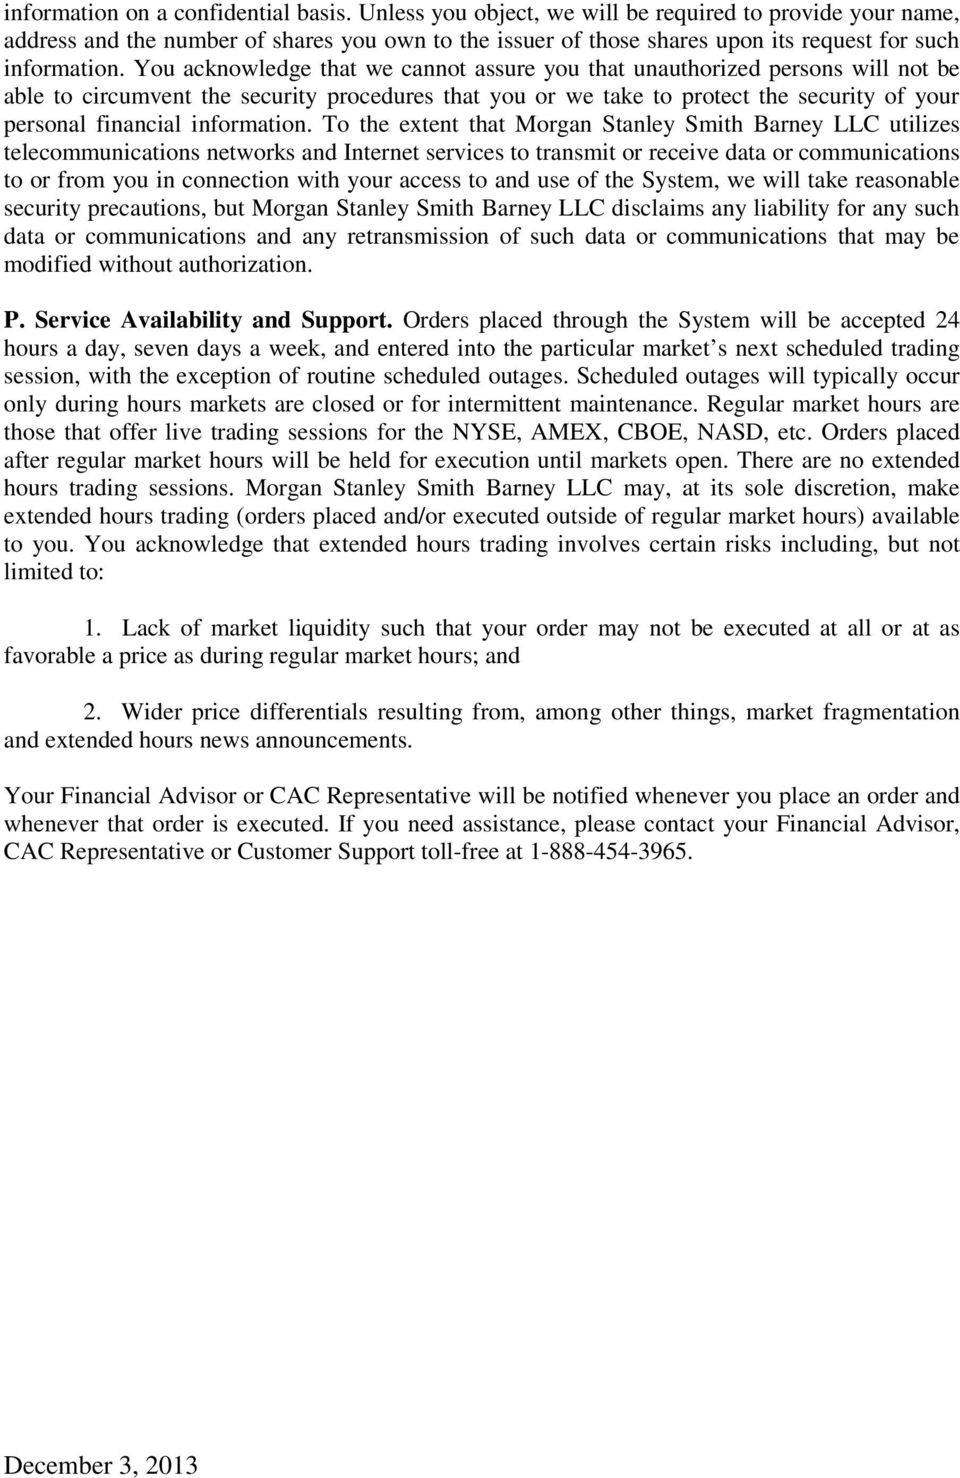 Morgan Stanley Online Clientserv Trading Agreement Pdf